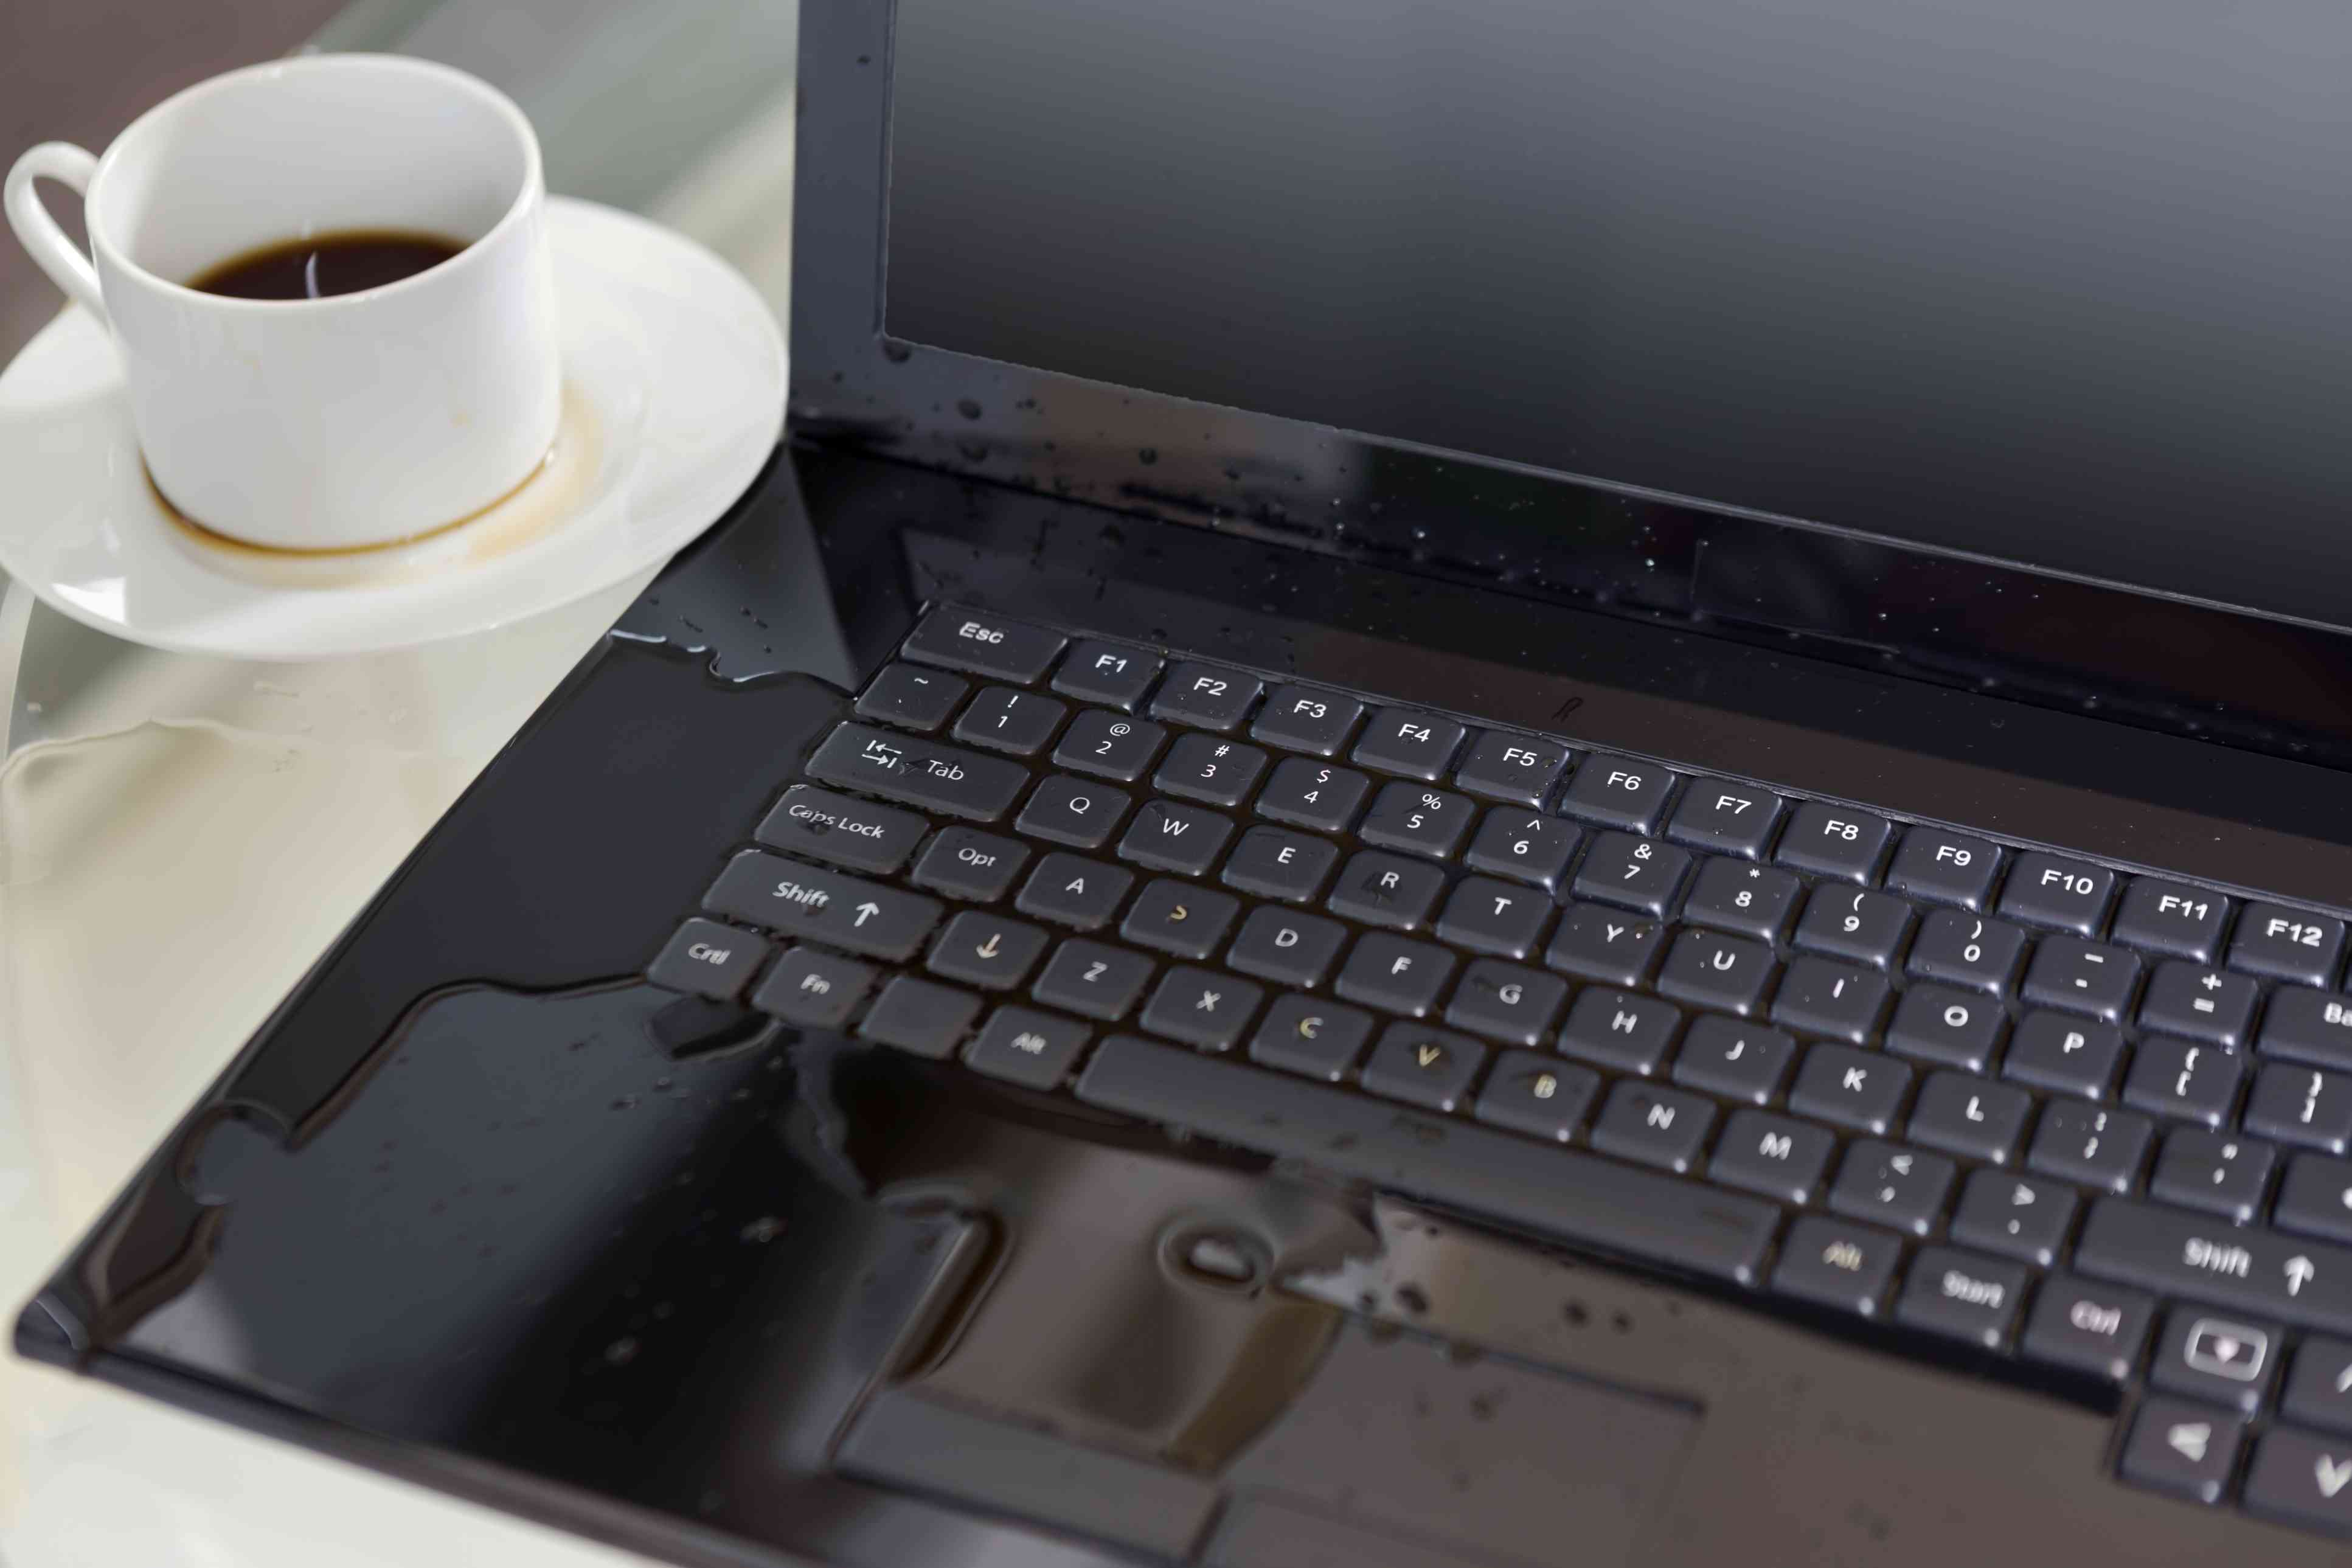 How To Save Your Laptop After A Spill